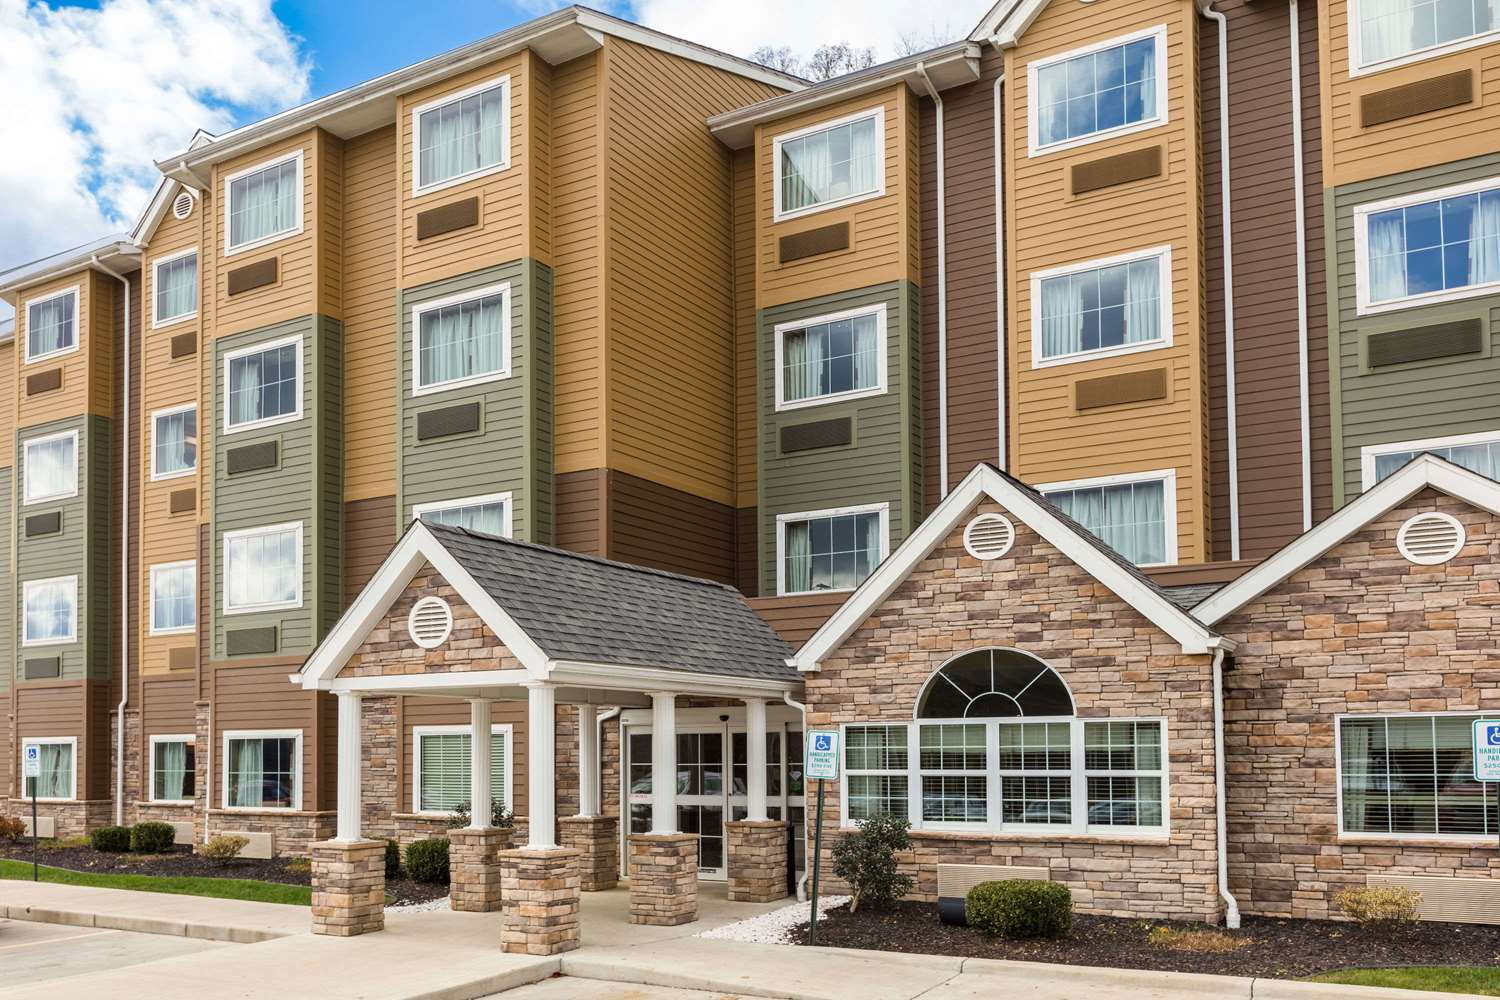 Exterior view - Microtel Inn & Suites by Wyndham Steubenville